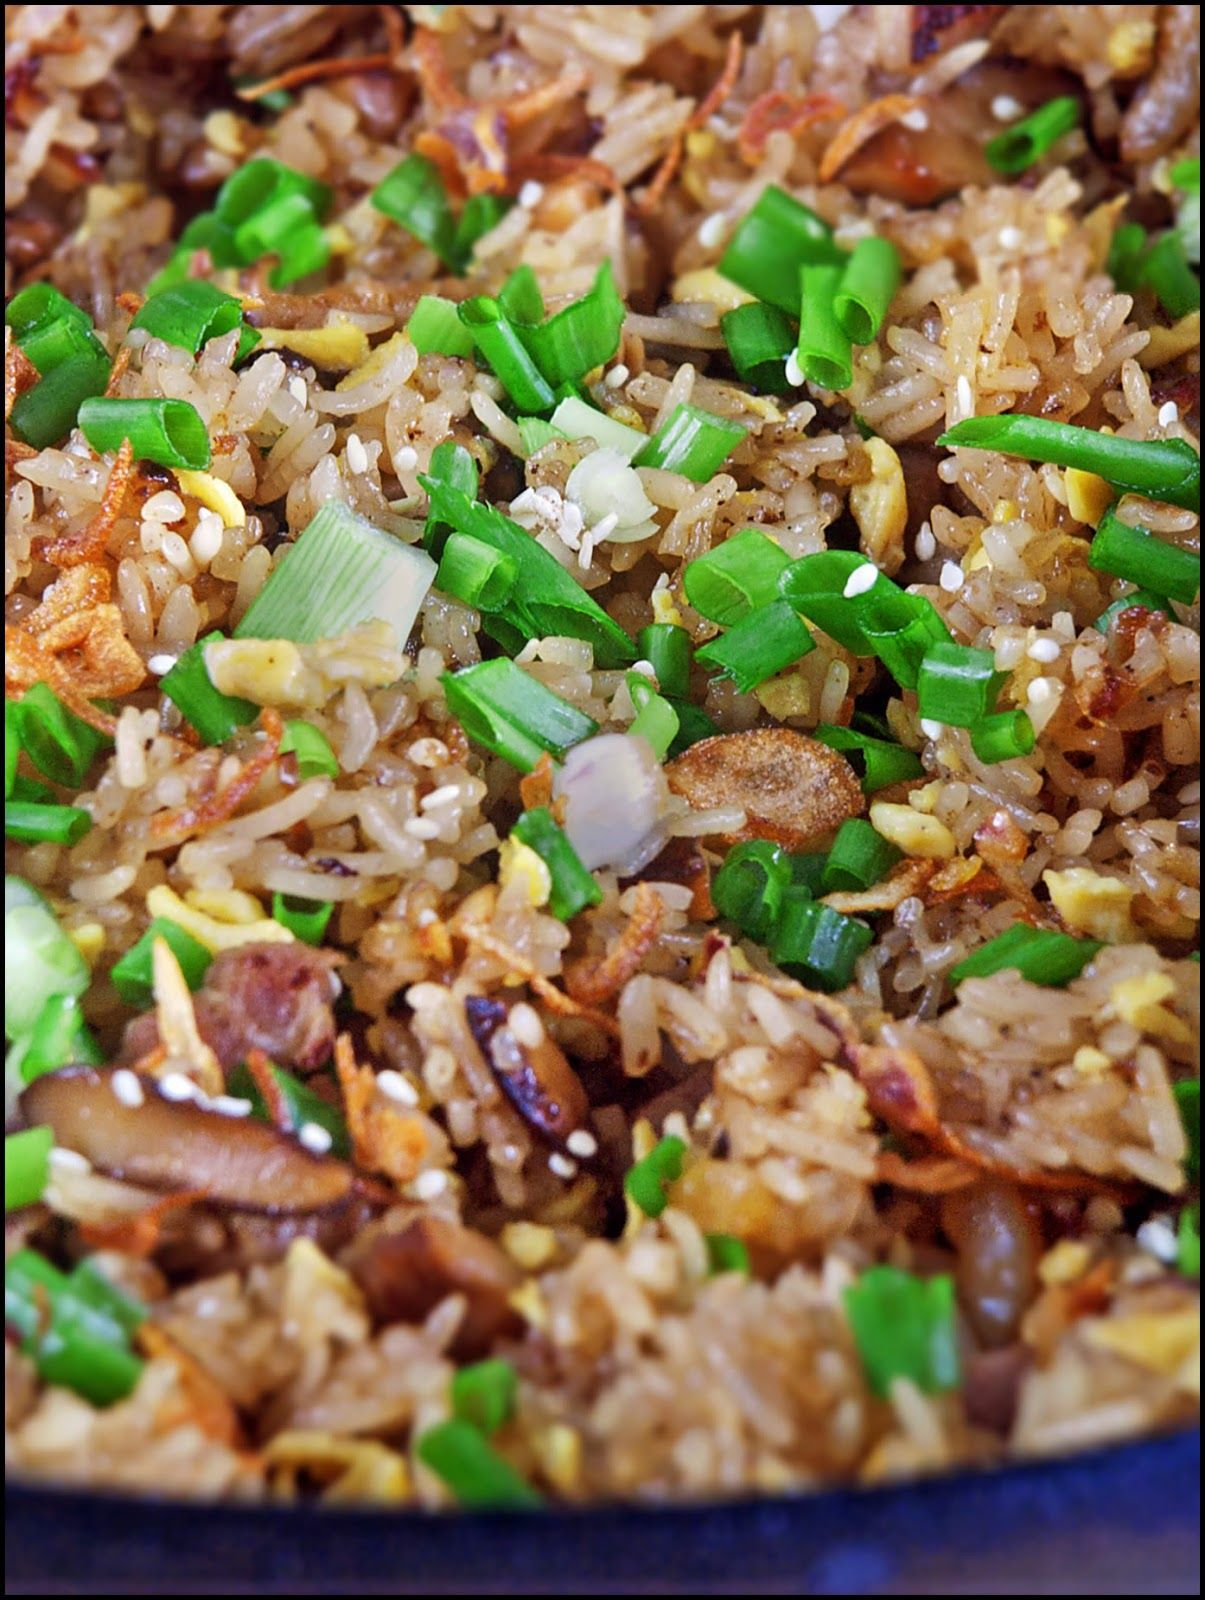 Fried Glutinous Rice | Recipe | Recipes, Bbq pork ribs ...